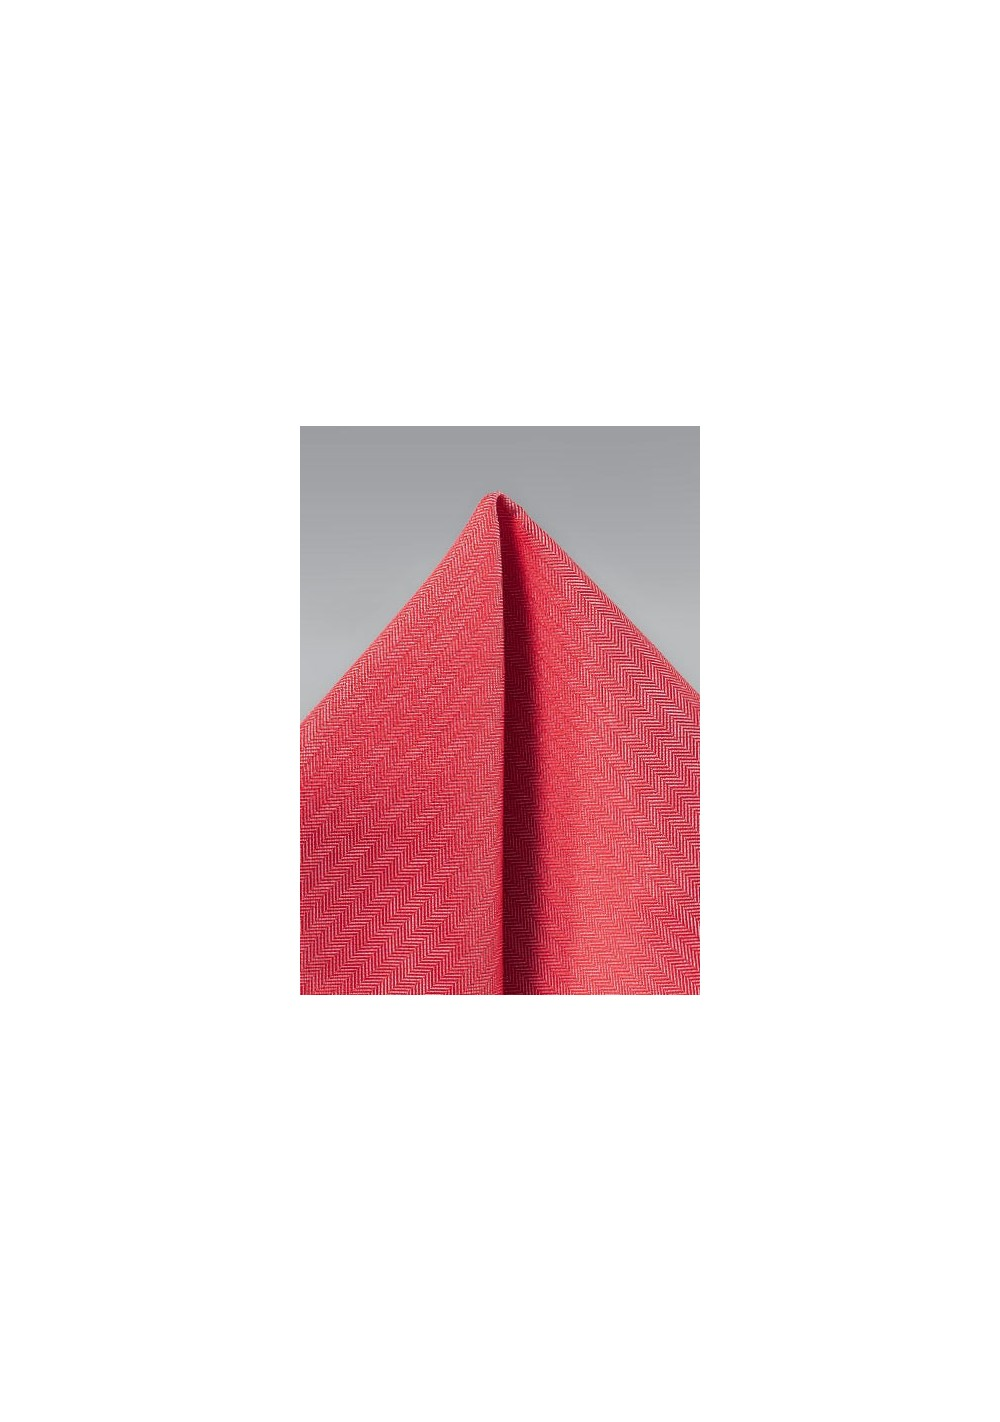 Herringbone Pocket Square in Valentine Red